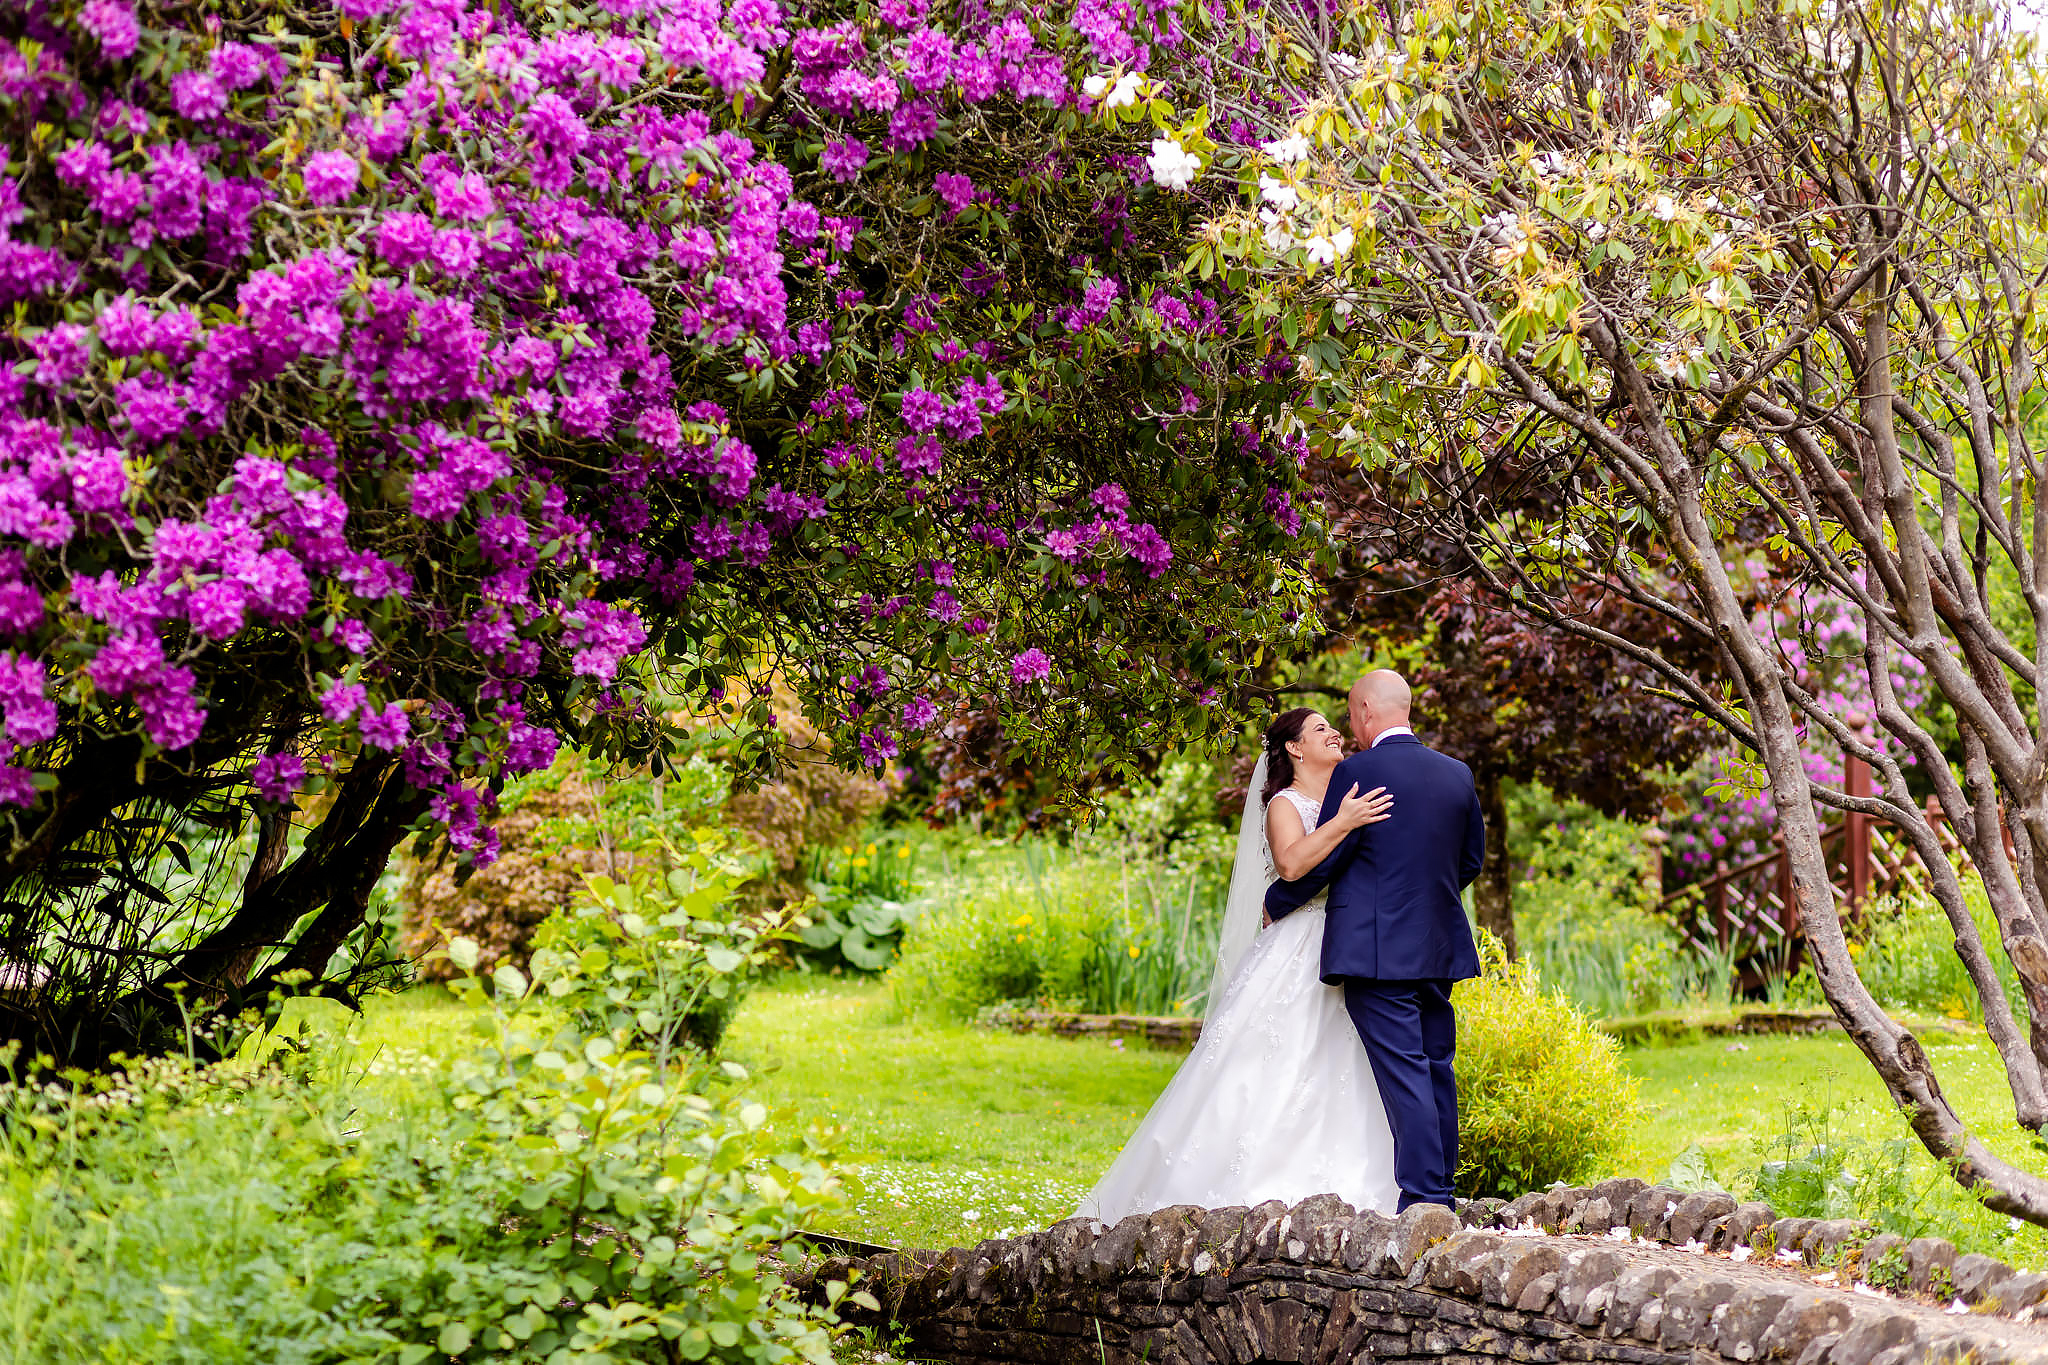 Bryngarw House Wedding Photography - Bride and Groom